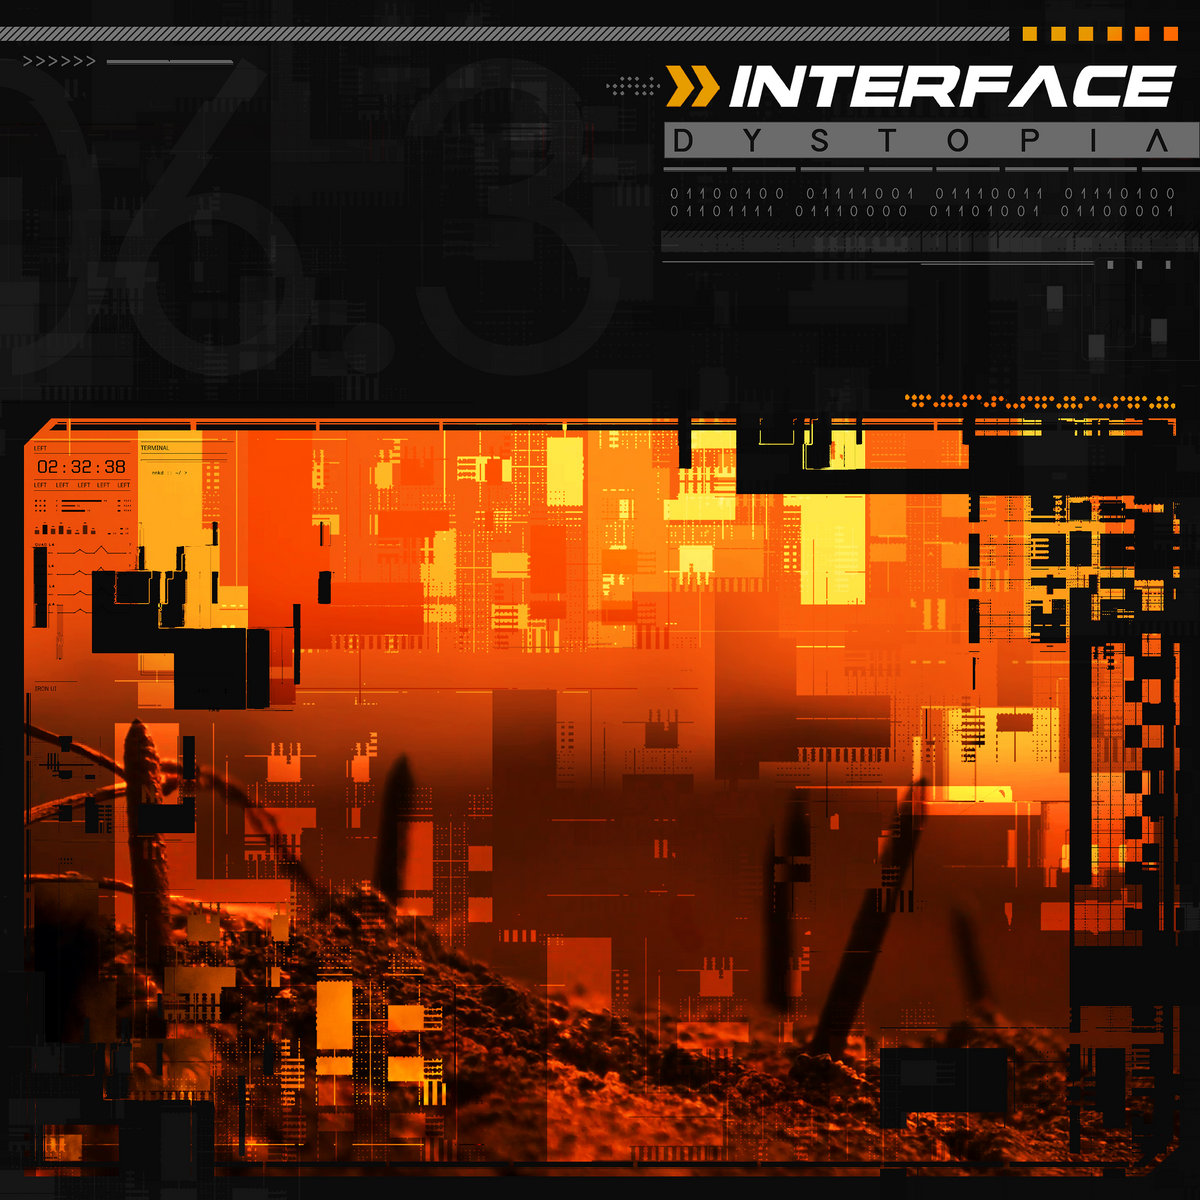 Interface - Dystopia - Interface - Dystopia